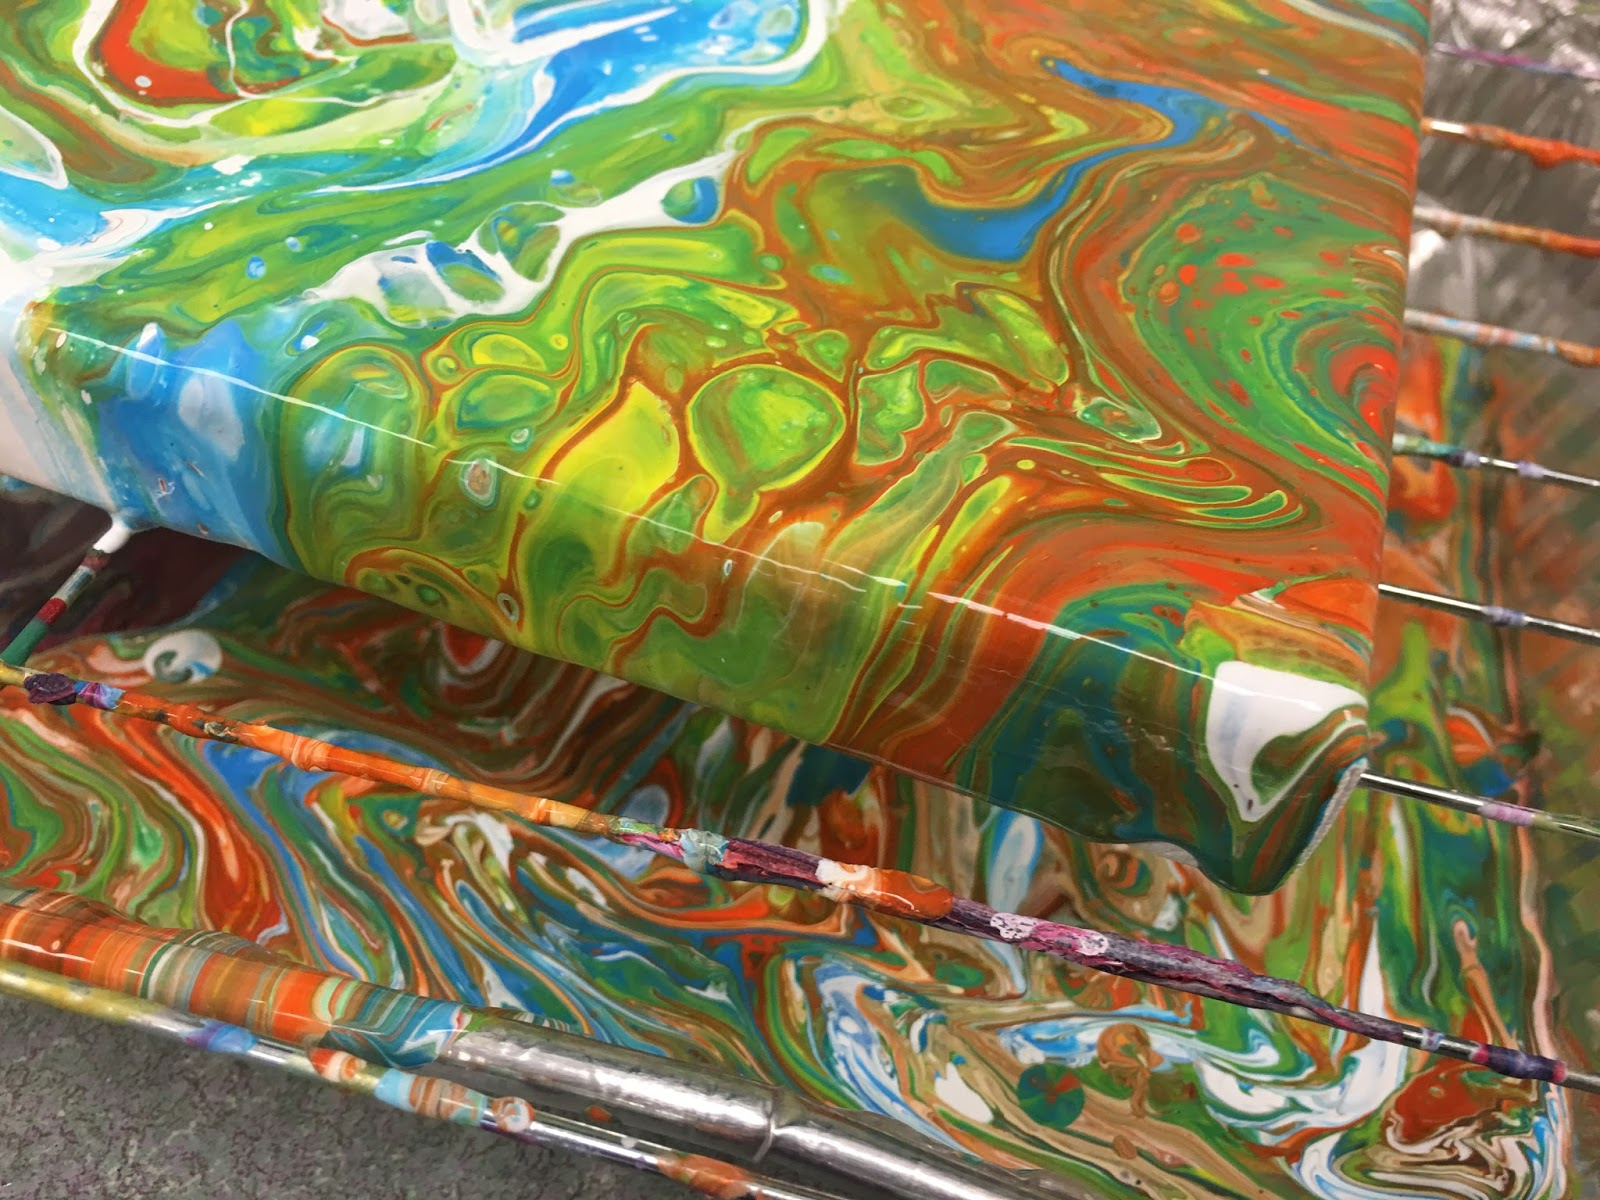 Art Room Blog: Acrylic Pour Painting...